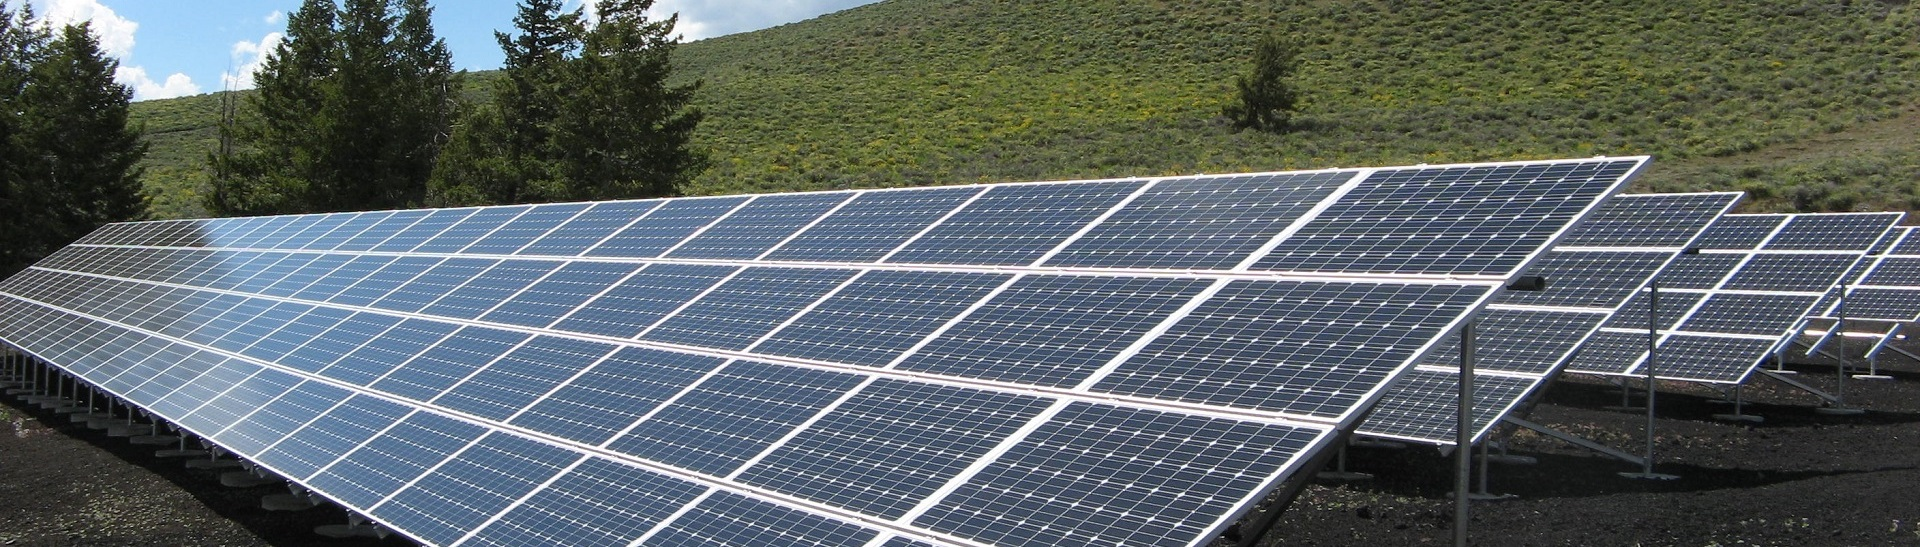 It's time for Virginia to power a clean energy future